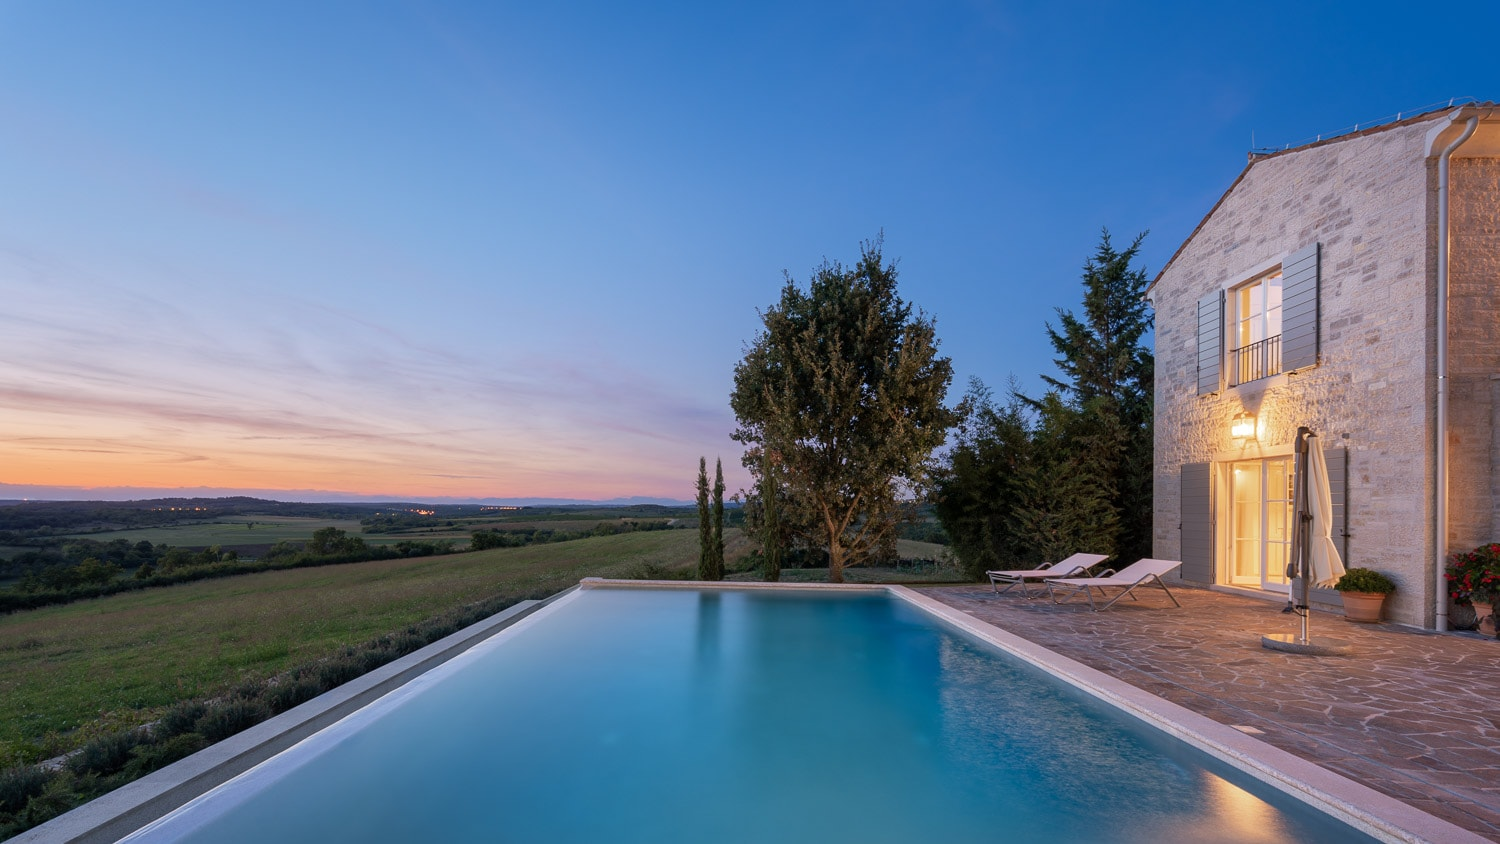 Property Image 1 - Five Star Luxury Stone Villa in Croatia's Wine Country